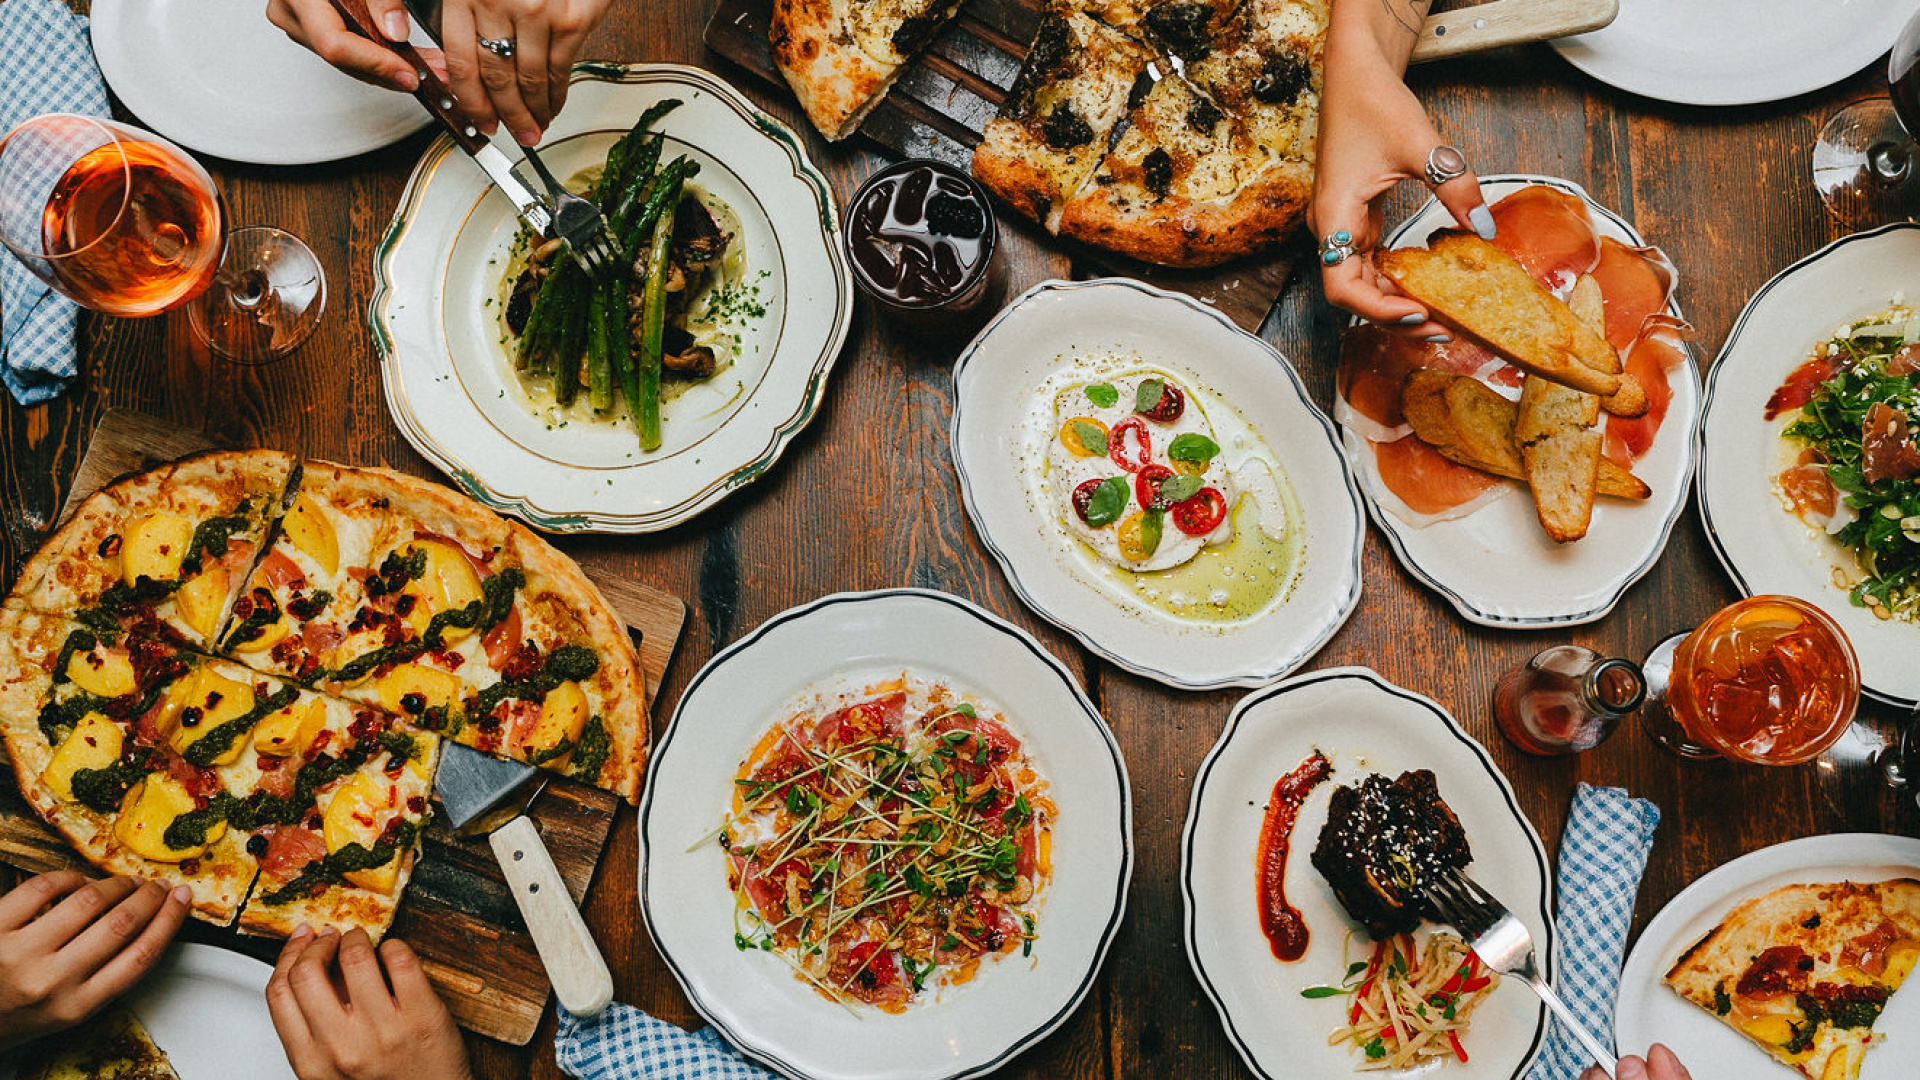 The best pizza in Toronto | A spread of pizza and other dishes at the Parlour